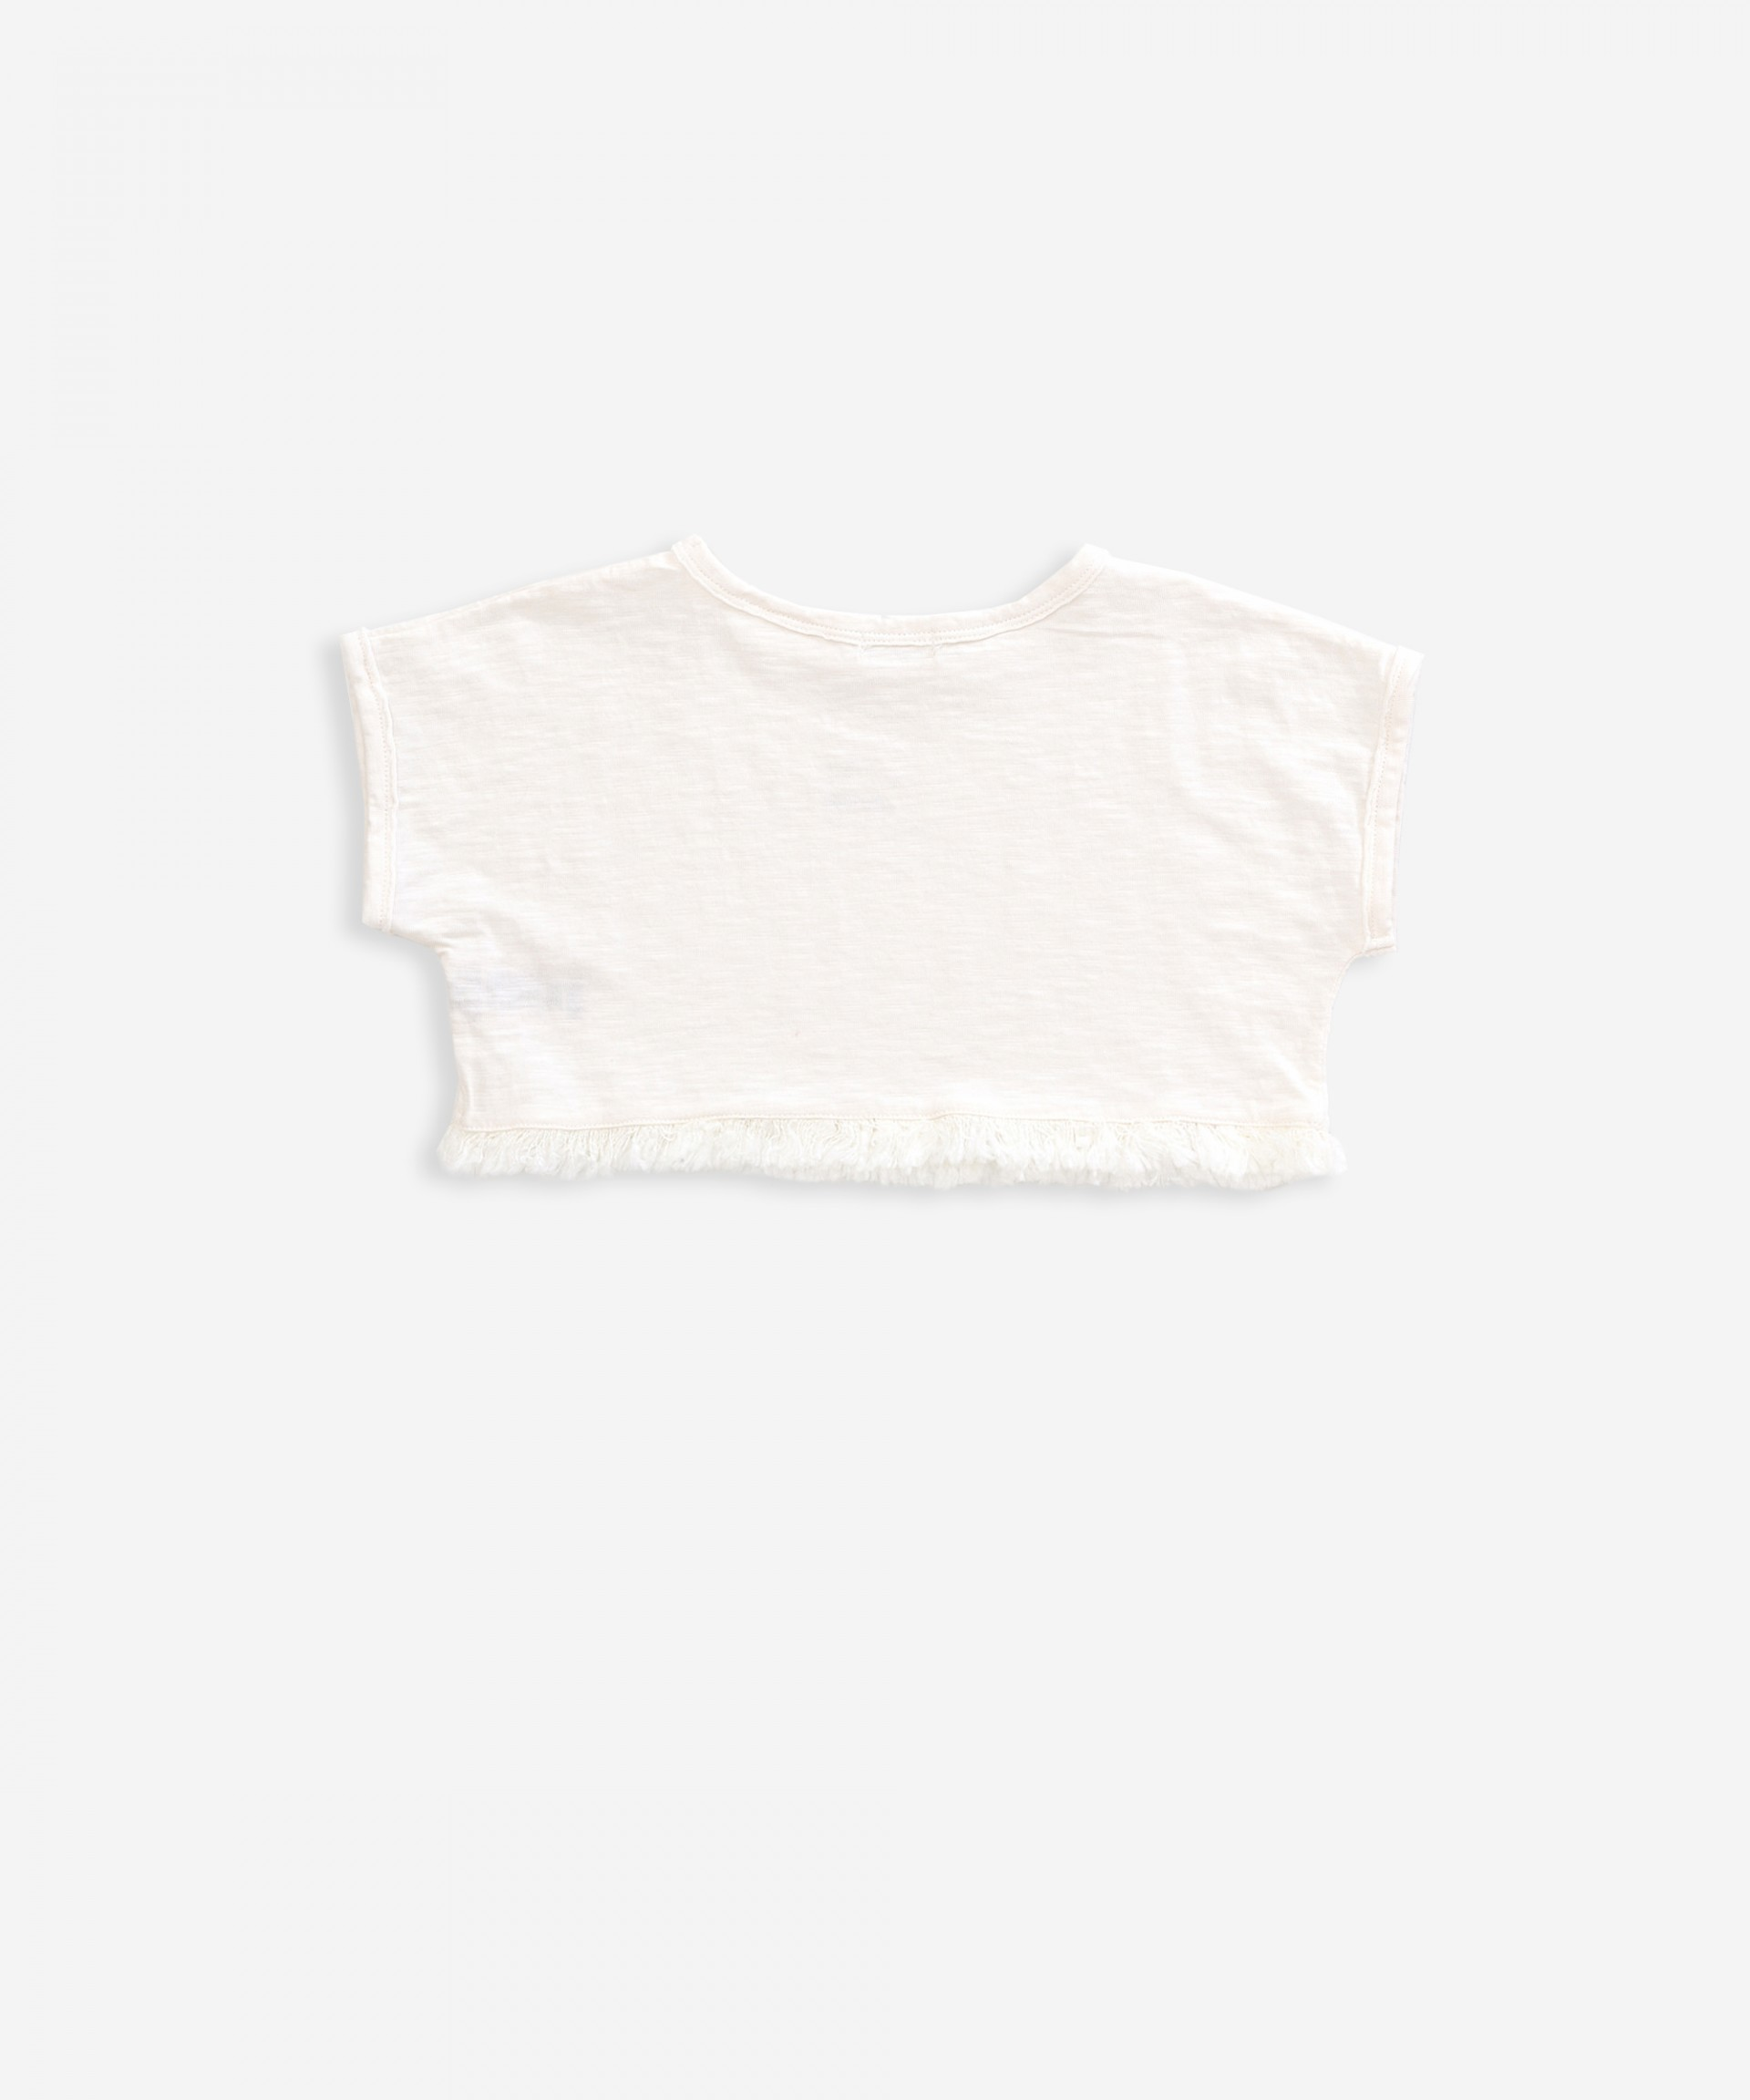 Short t-shirt in organic cotton | Weaving